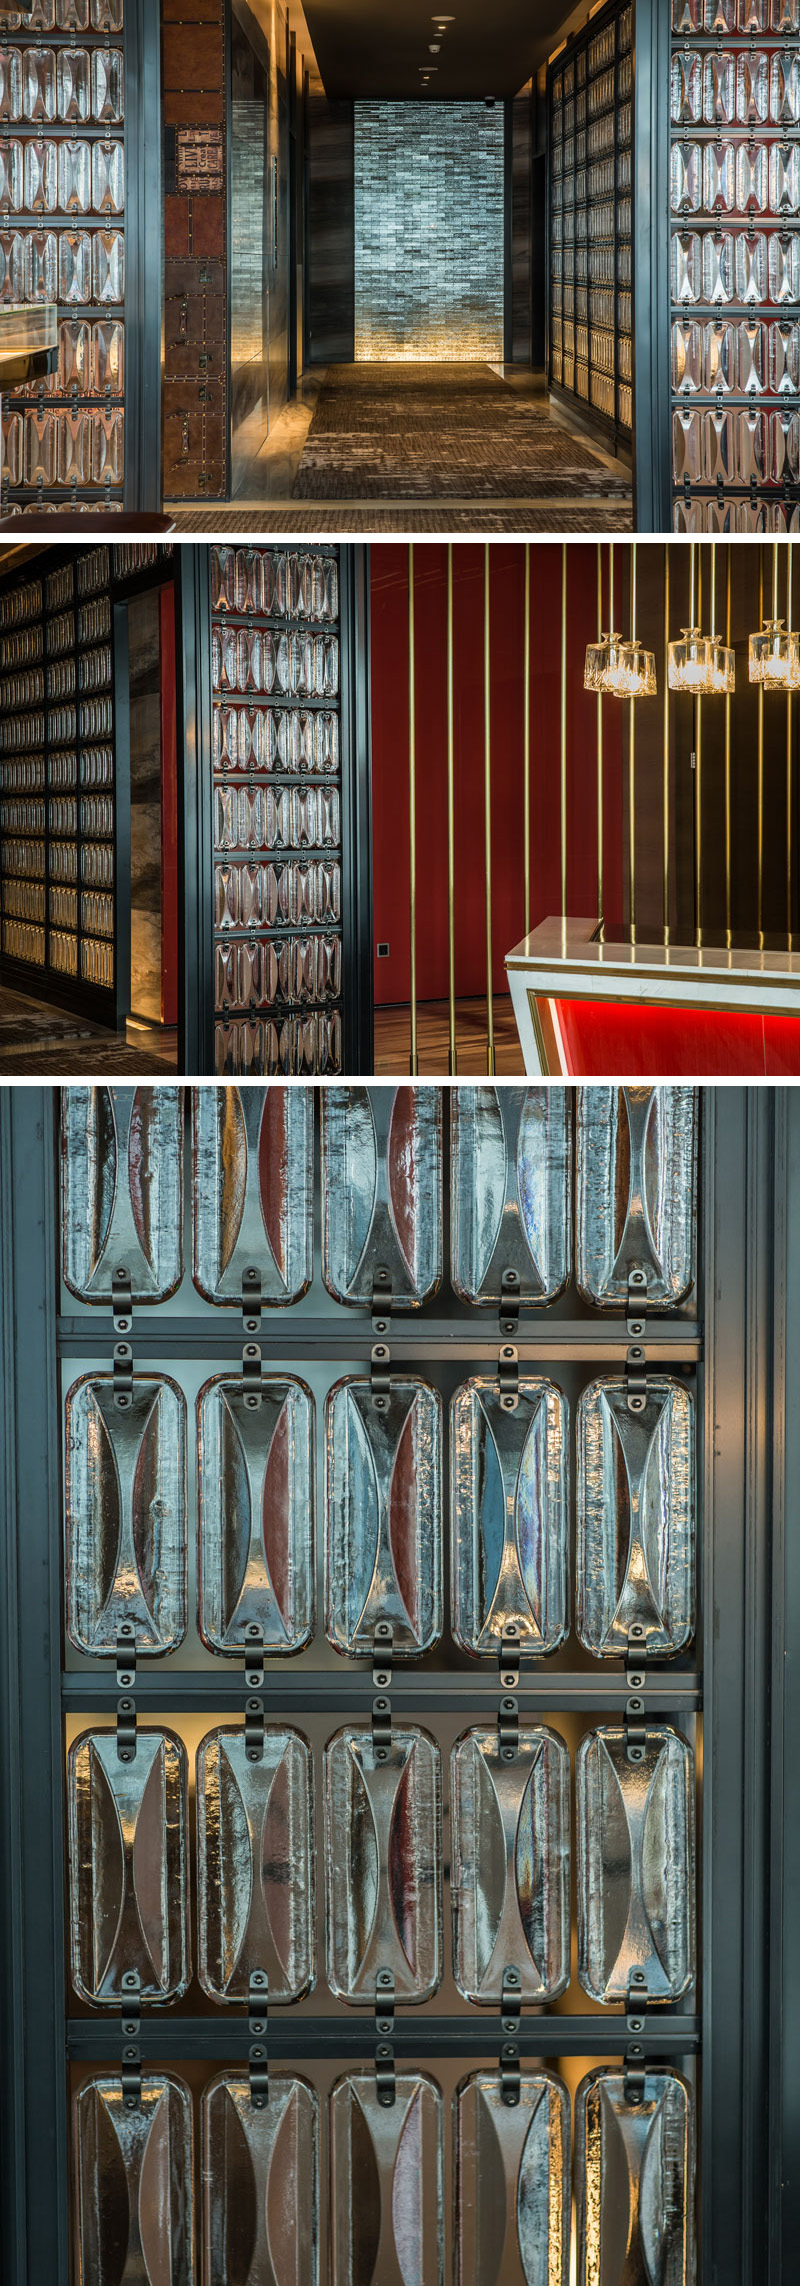 Decorative glass elements lead this modern hotel bar, which is adorned in red, black, and copper components, creating an slightly modern industrial atmosphere.